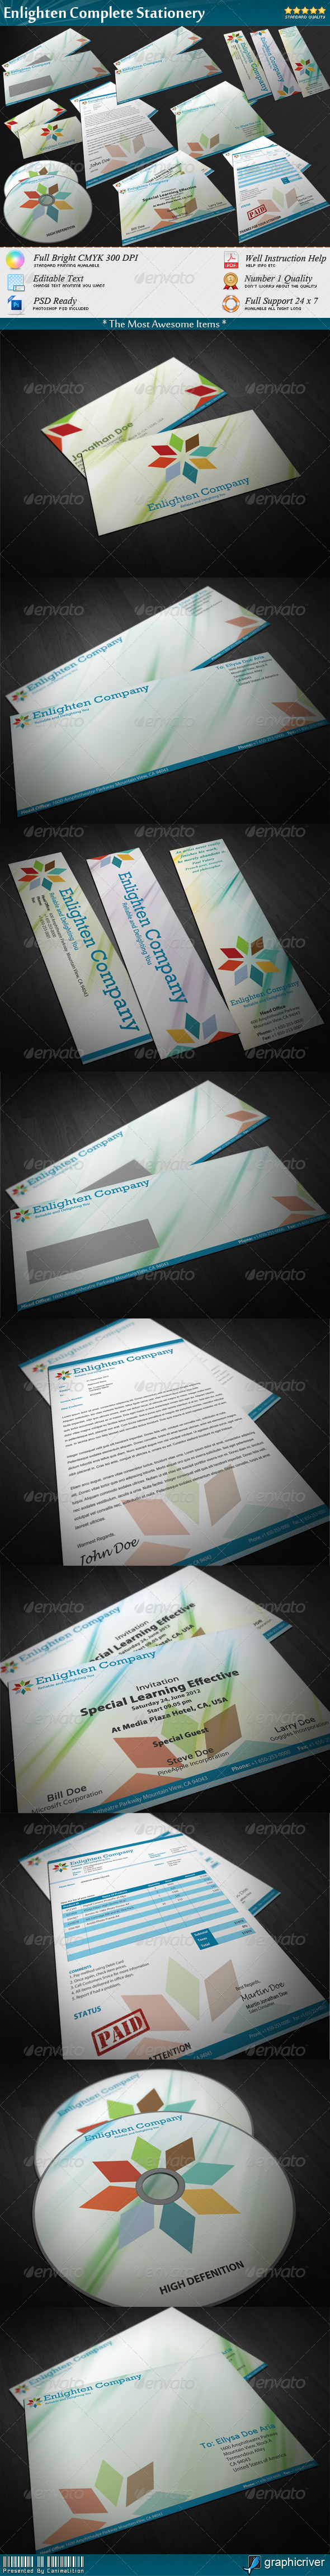 GraphicRiver Enlighten Complete Stationery 1481629